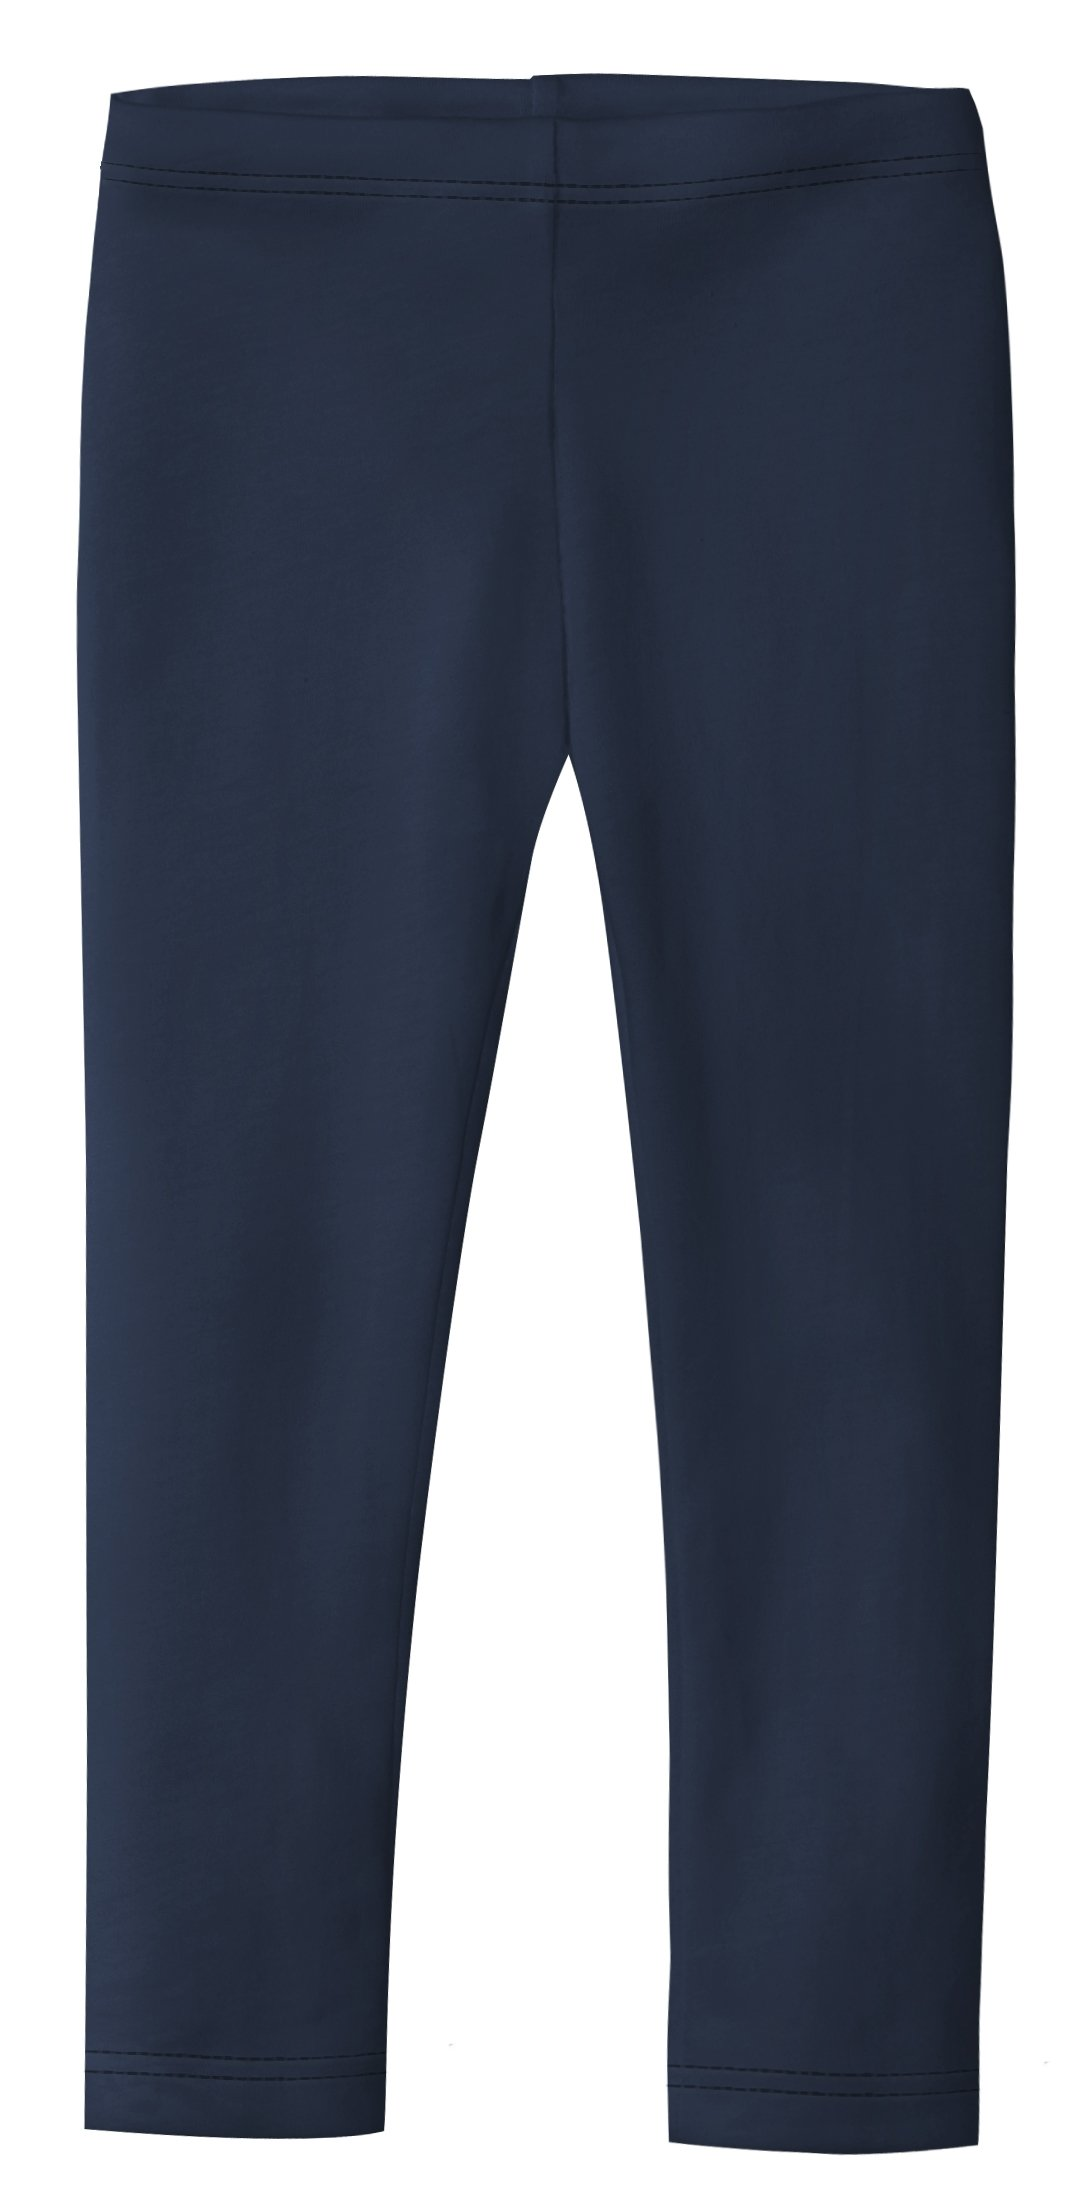 City Threads Girls' Leggings 100% Cotton for School Uniform Sports Coverage or Play Perfect for Sensitive Skin or SPD Sensory Friendly Clothing, Navy, 10 by City Threads